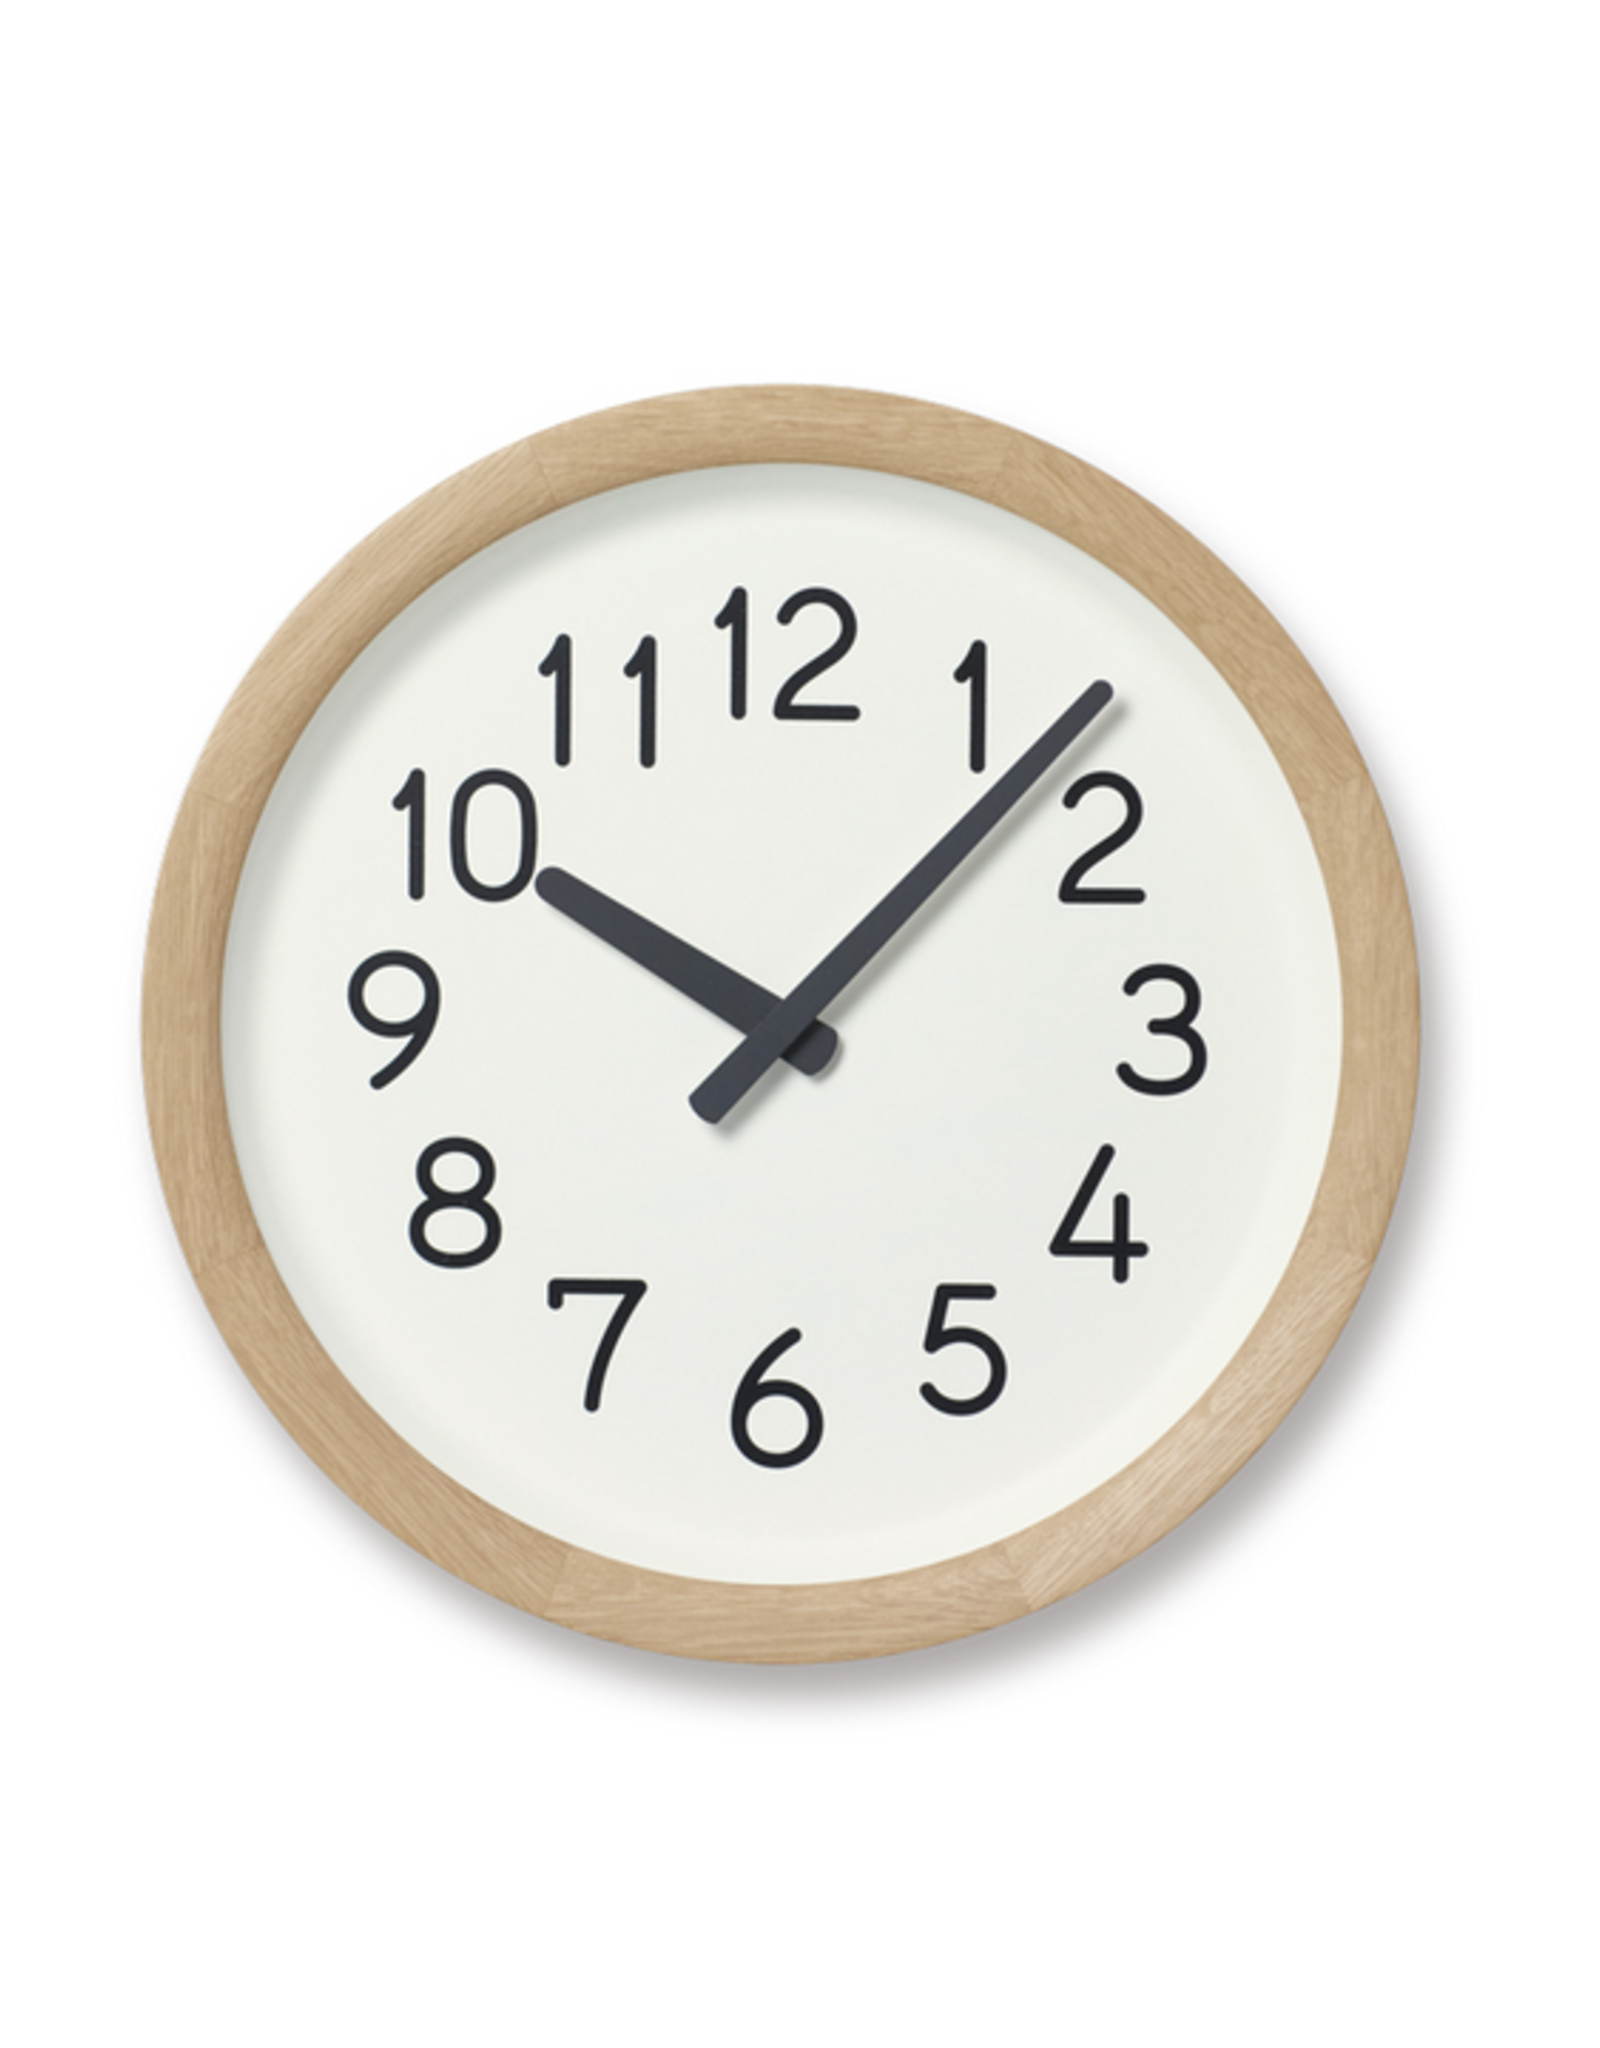 Day to Day Clock, Natural